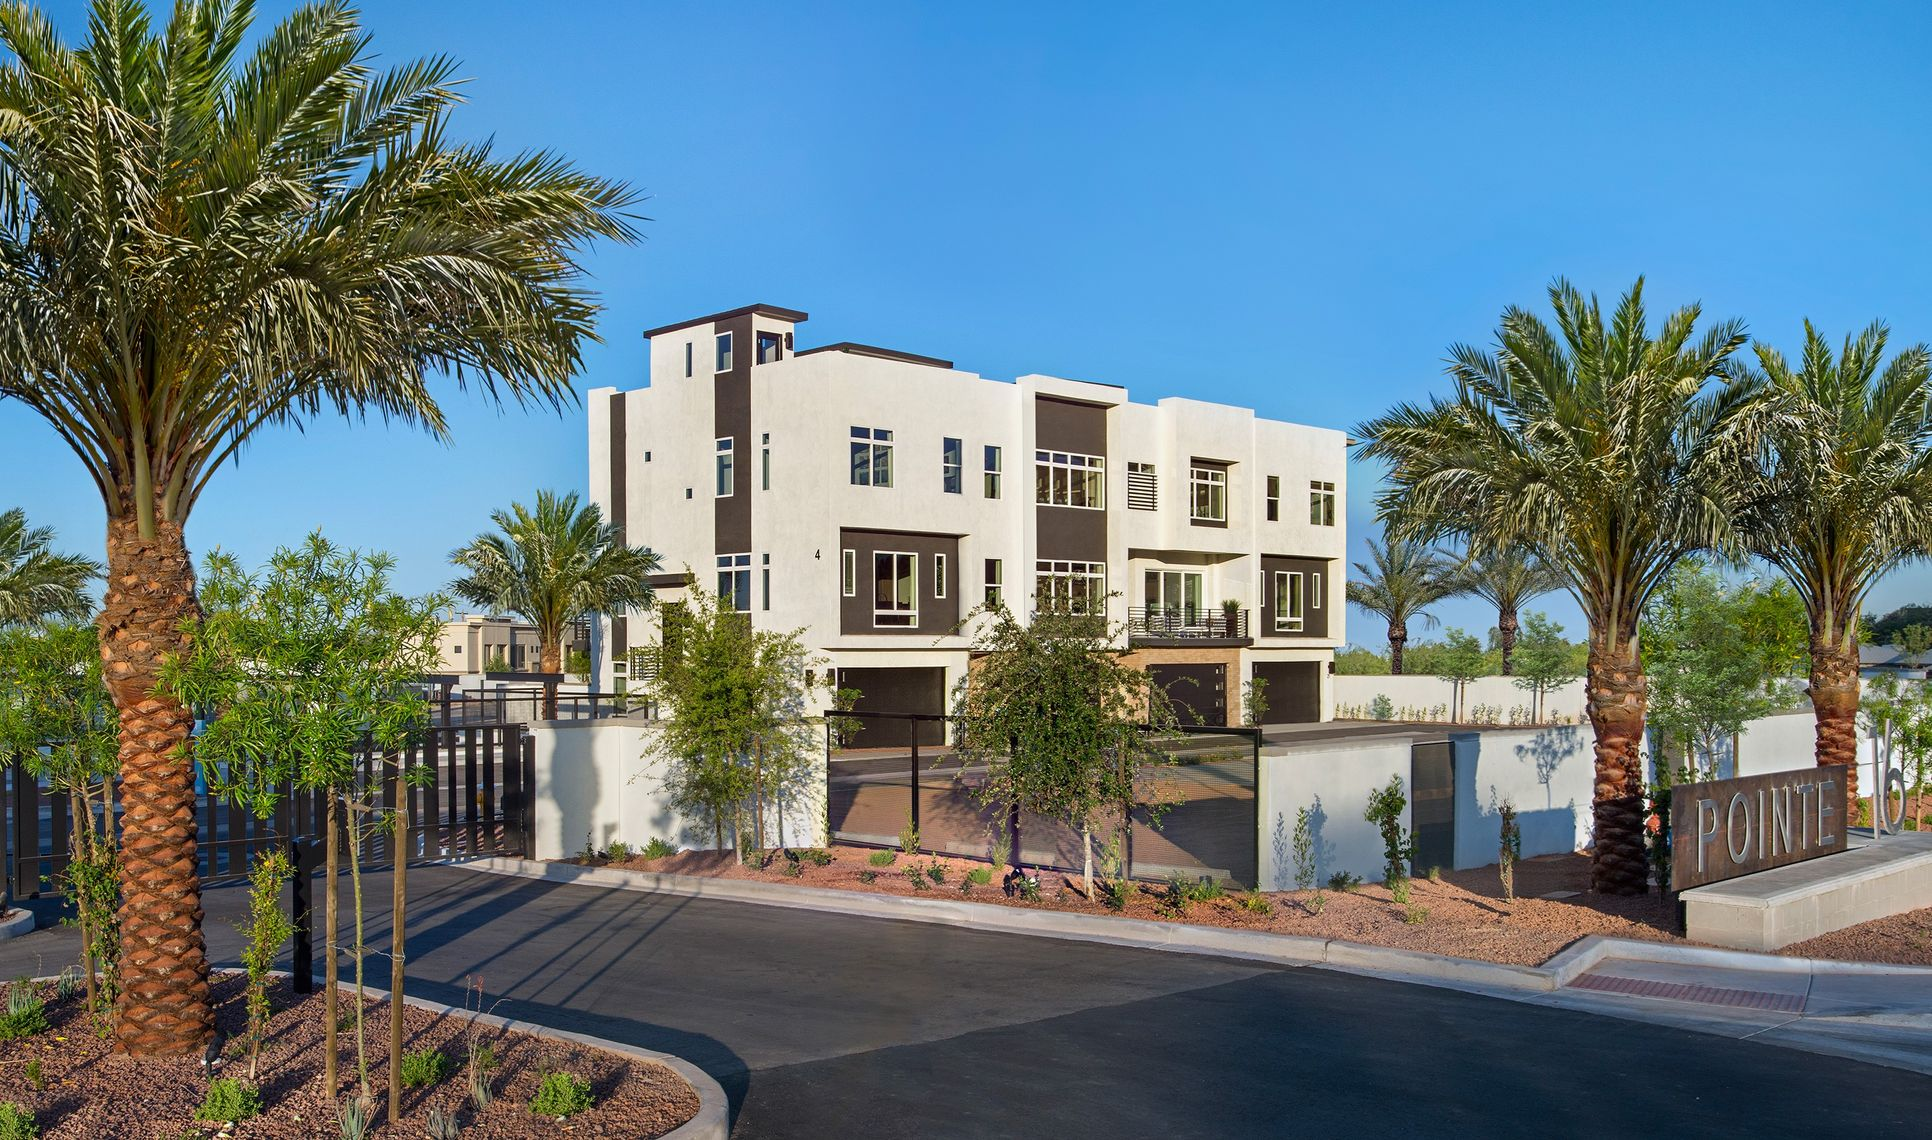 Pointe 16 in Phoenix, AZ :: New Homes by K. Hovnanian® Homes